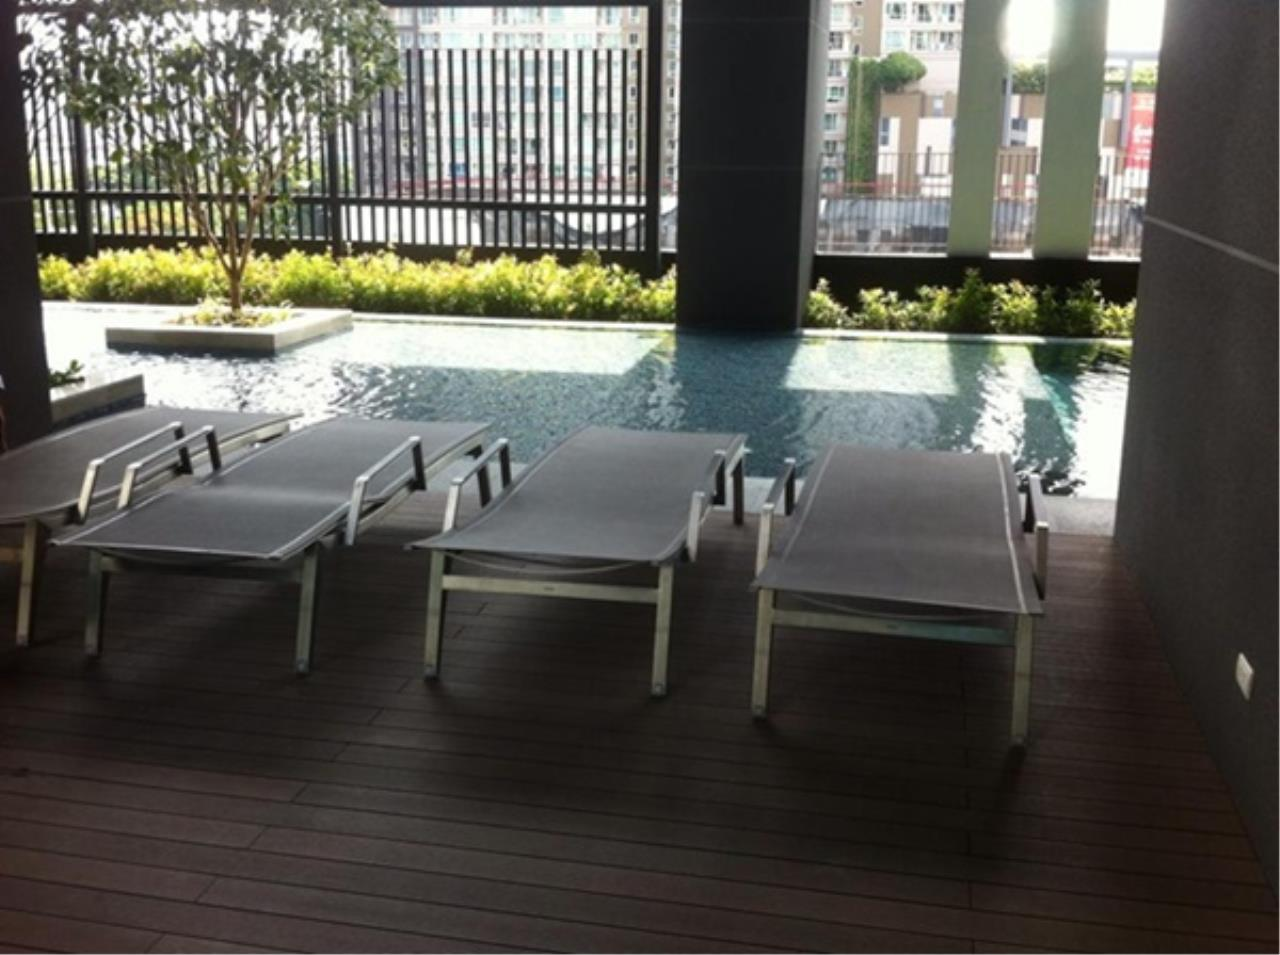 Siam Prop Agency's The Capital Ekamai - Thonglor Luxury Condo, 2 bedrooms for rent with 4-meter ceiling height 13